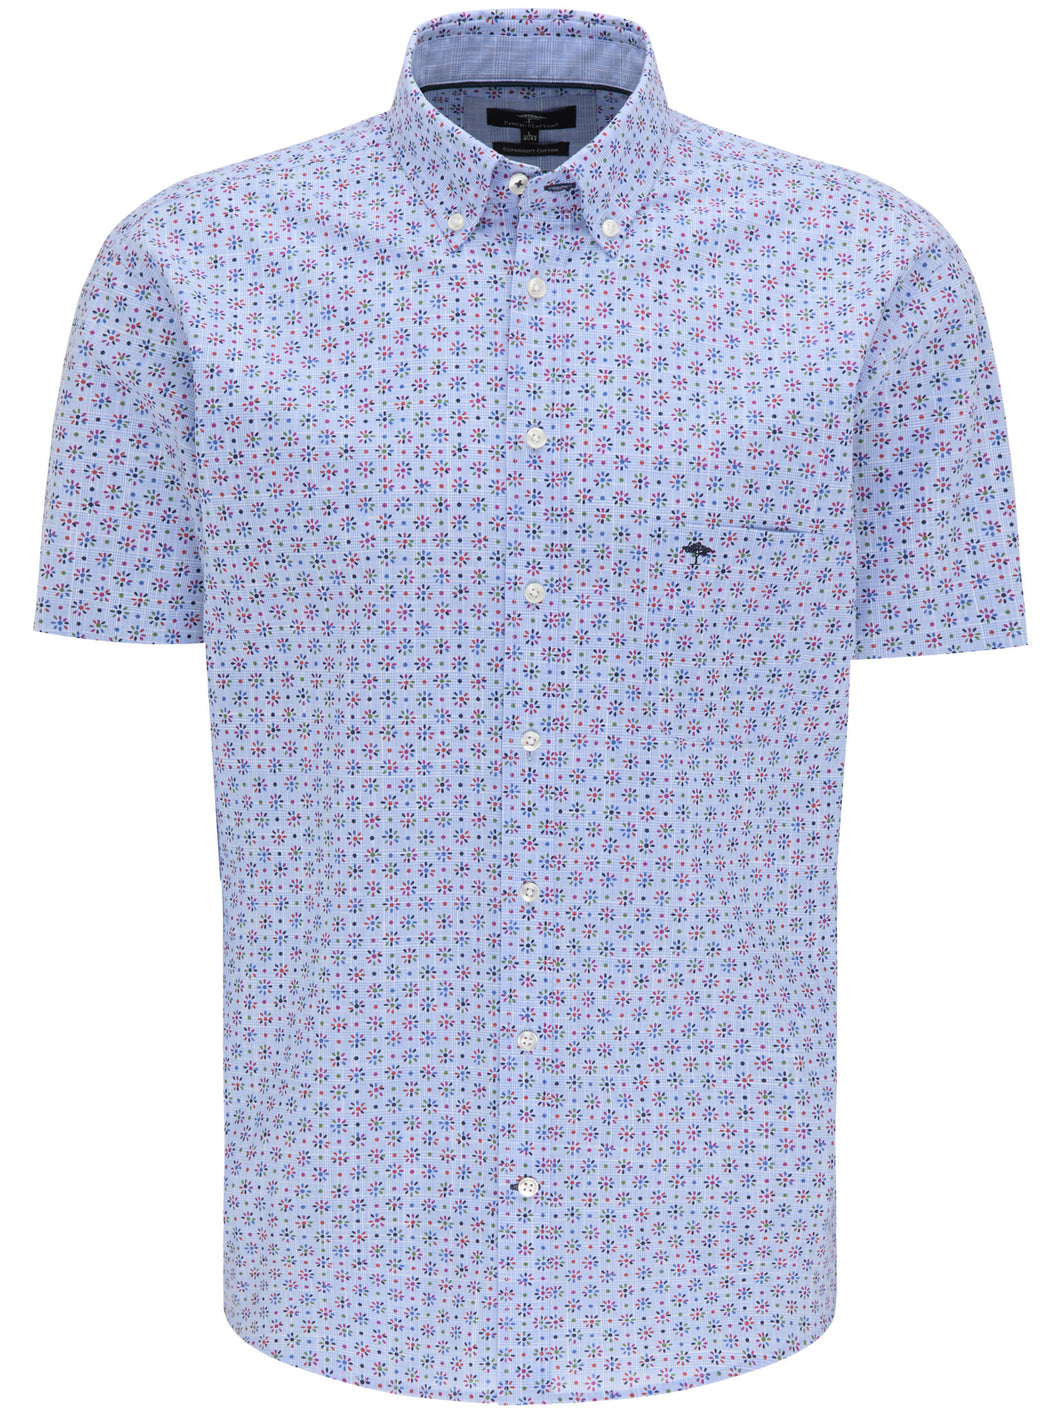 Fynch Hatton Lightweight Summer Story, Button Down Collar, Long Sleeve in regular Classic fit.    Chosen in  Multicolour